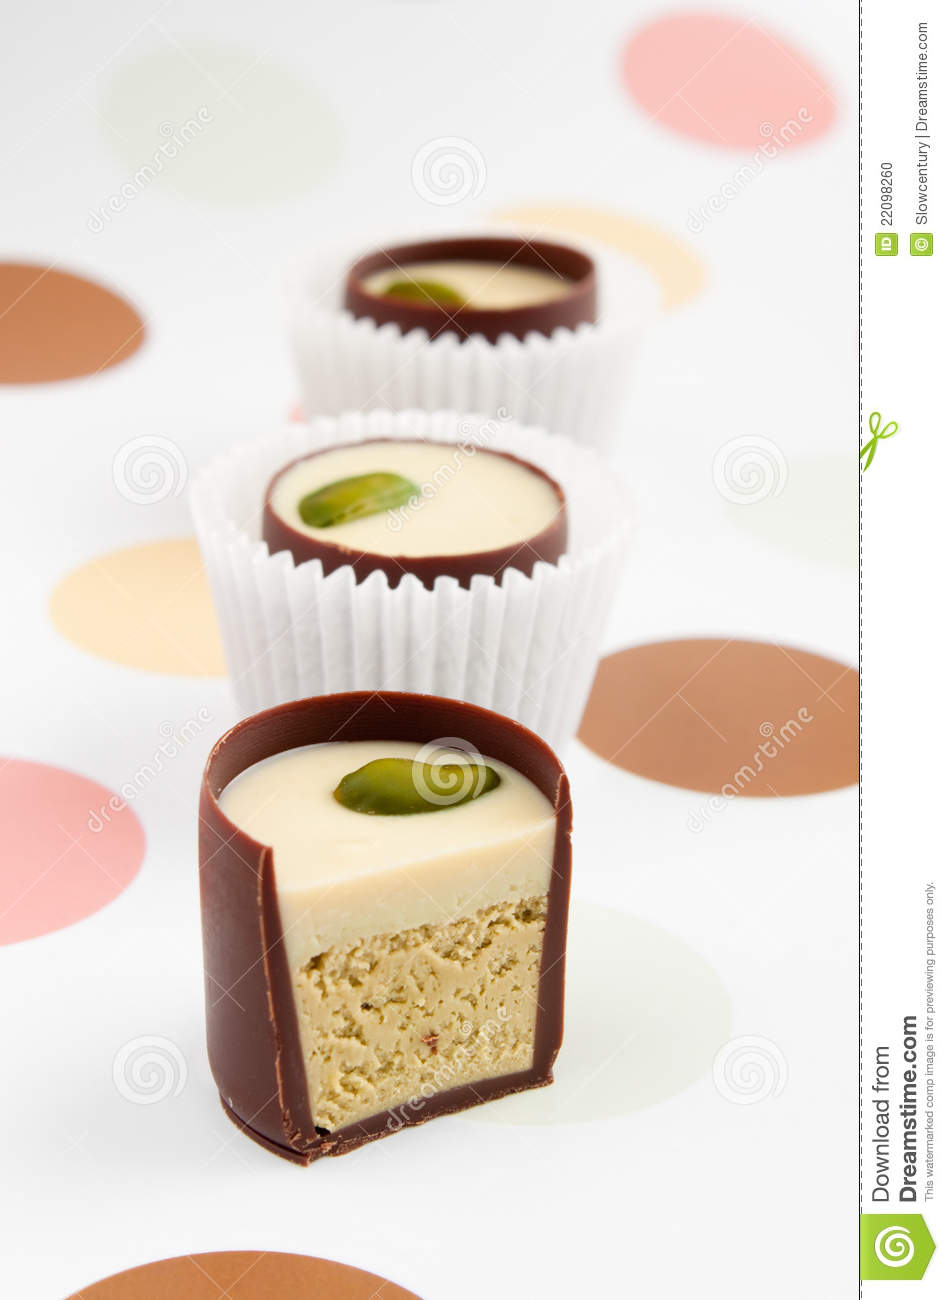 Chocolate Candies With Filling Stock Photo Image 22098260